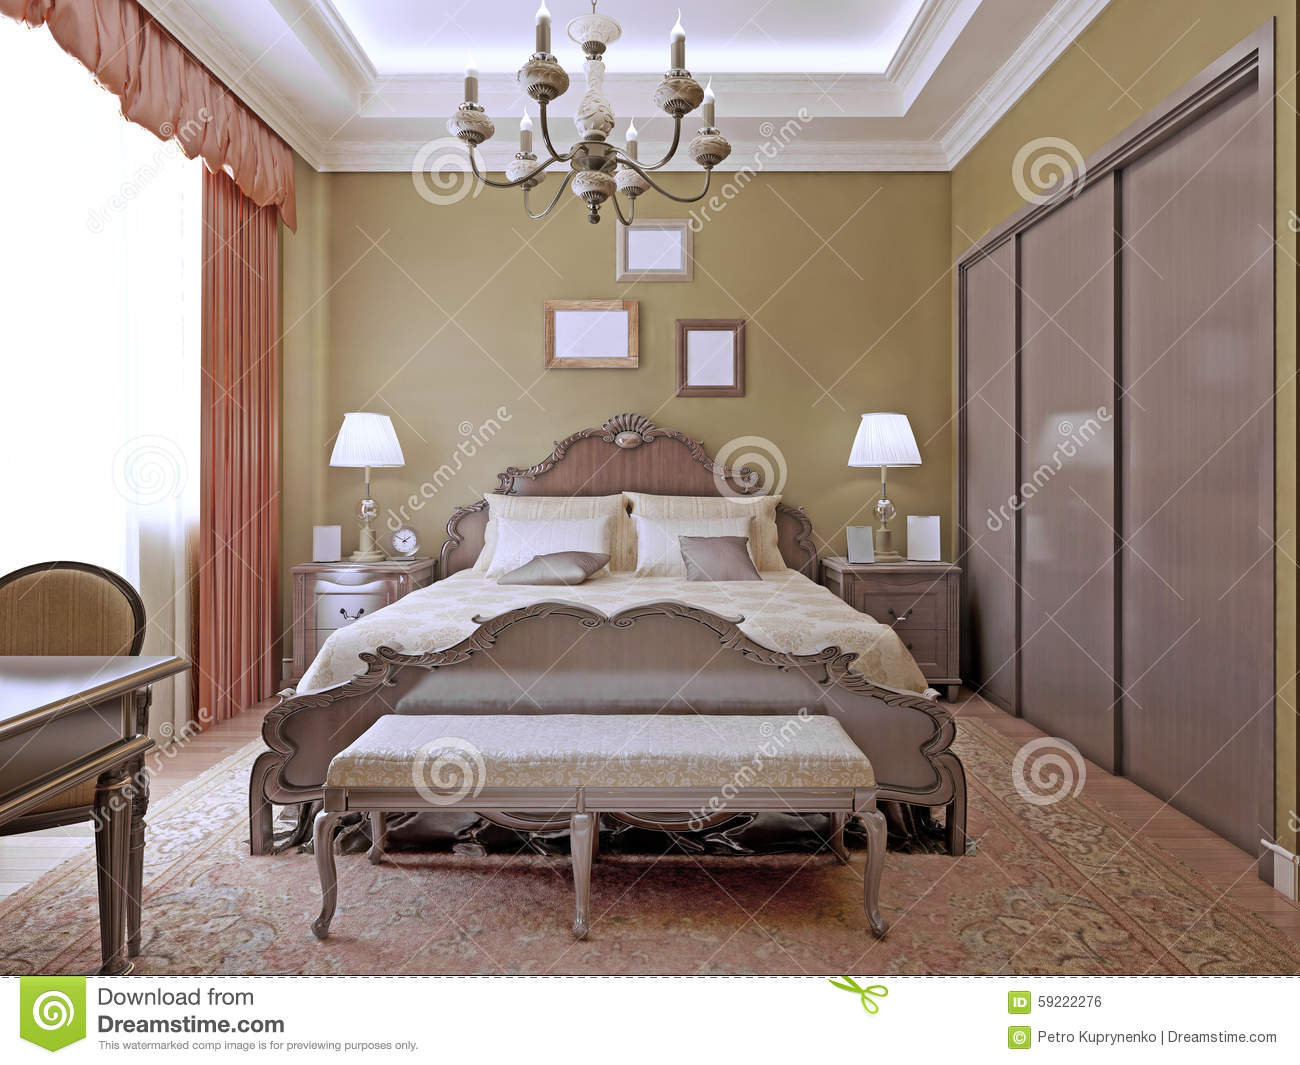 Art Deco Style Bedroom Art Deco Bedroom With Ceiling Neon Lights Stock Photo